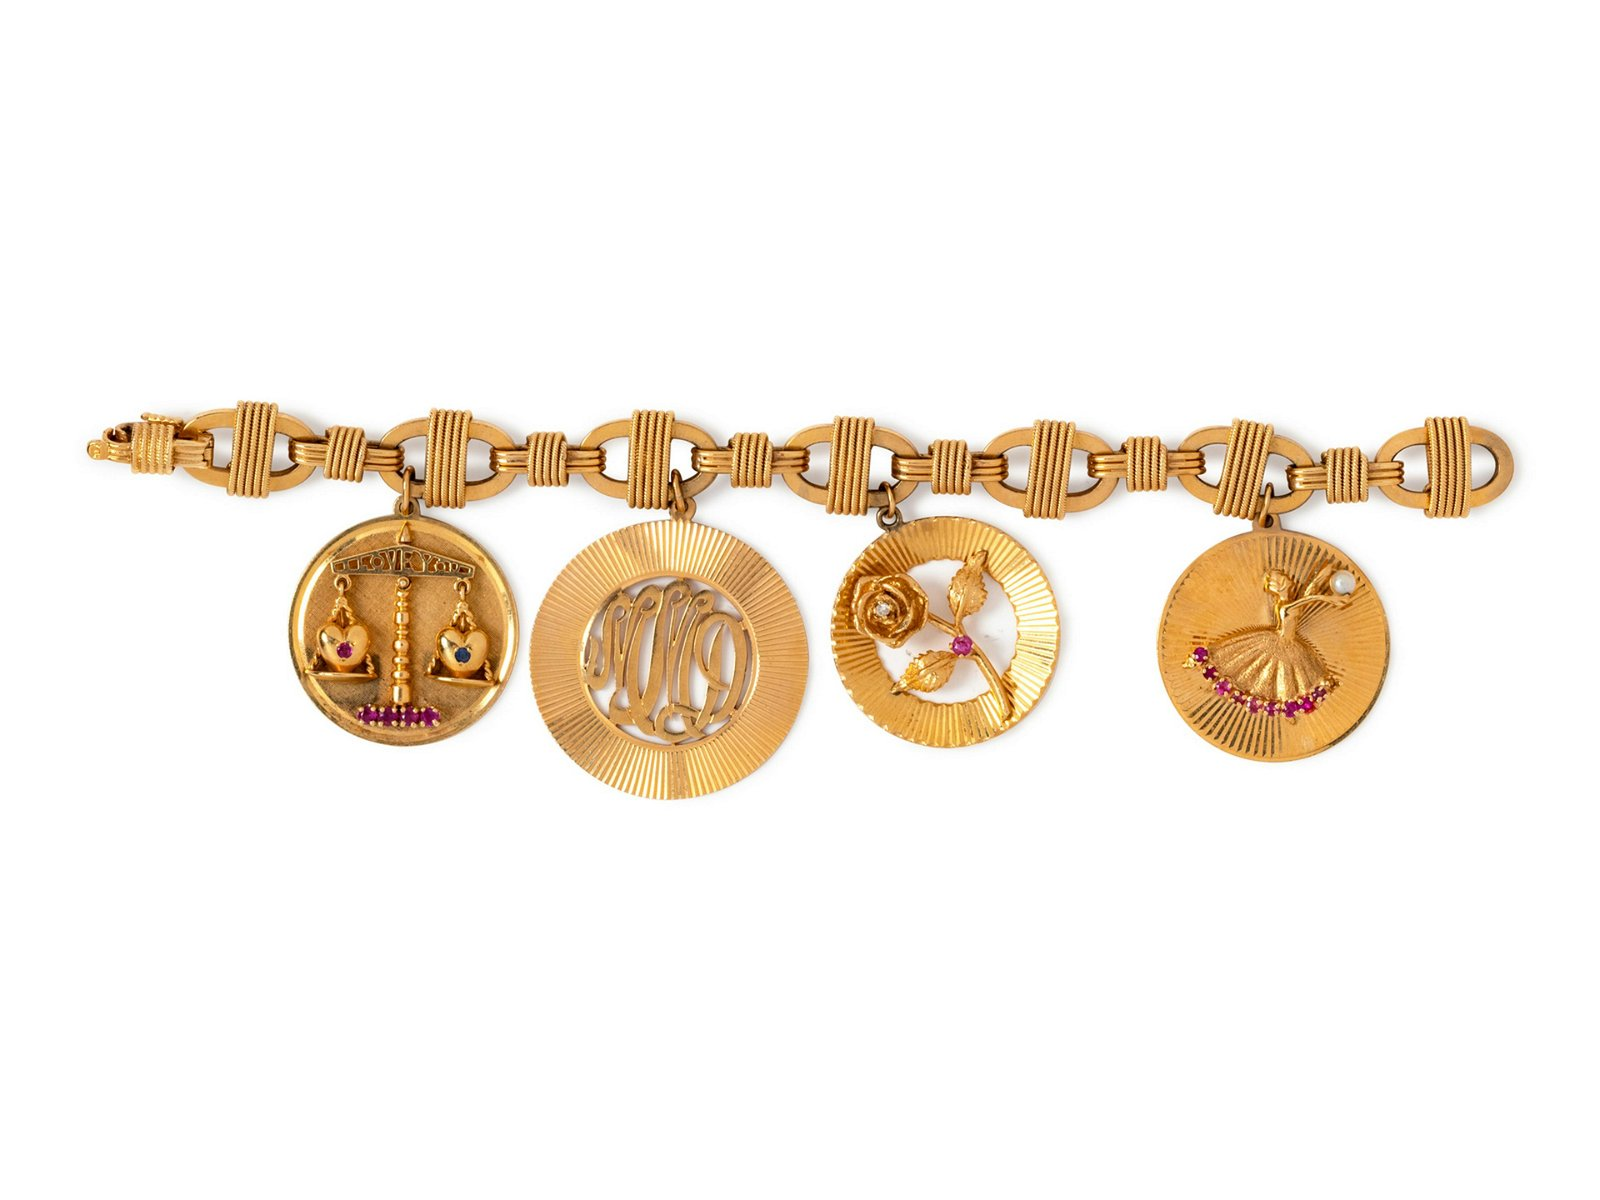 A 14 Karat Yellow Gold Bracelet with 4 Attached Charms,